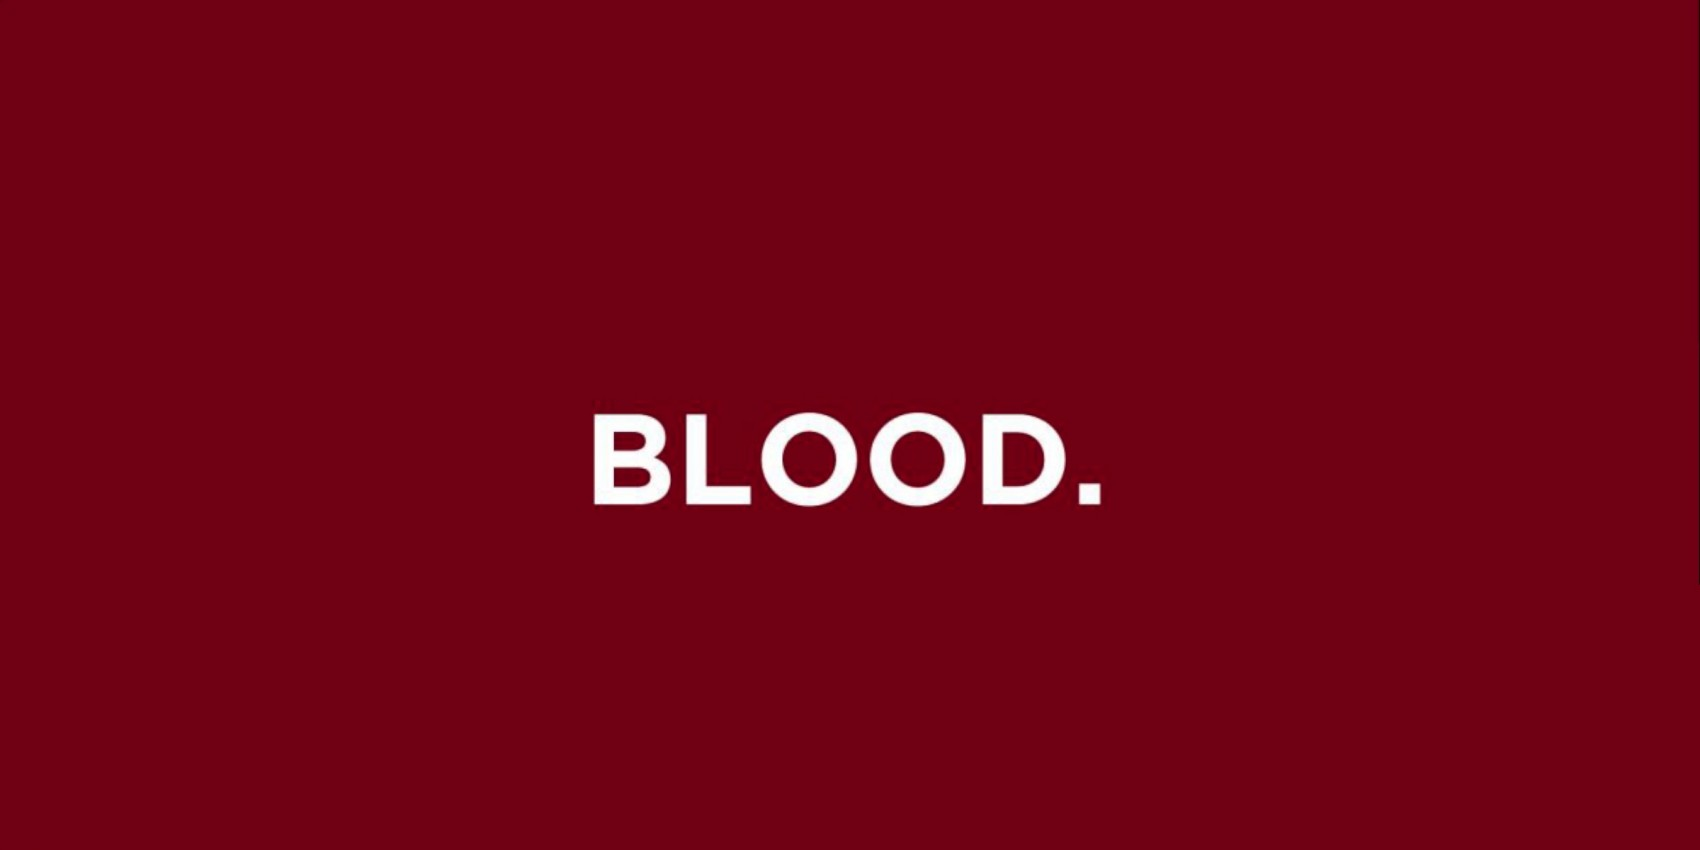 The word Blood written in white on a red background